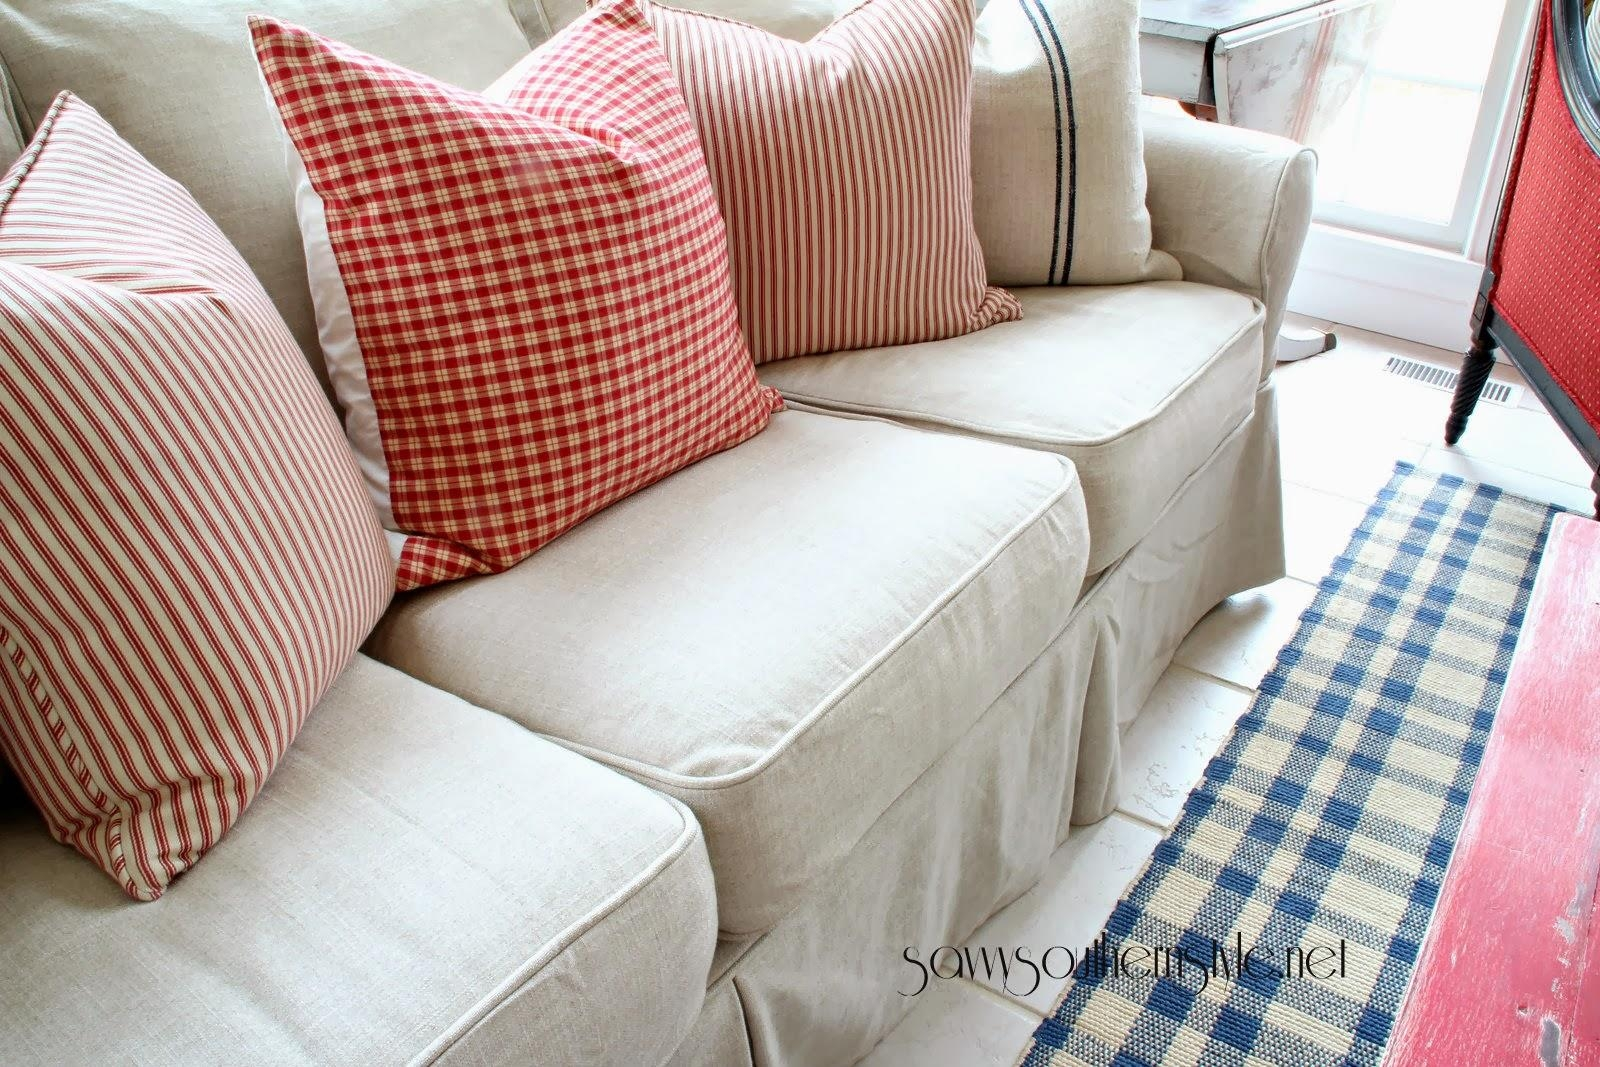 Custom Slipcovers And Couch Cover For Any Sofa Online With Lillberg Sofa Covers (View 14 of 20)